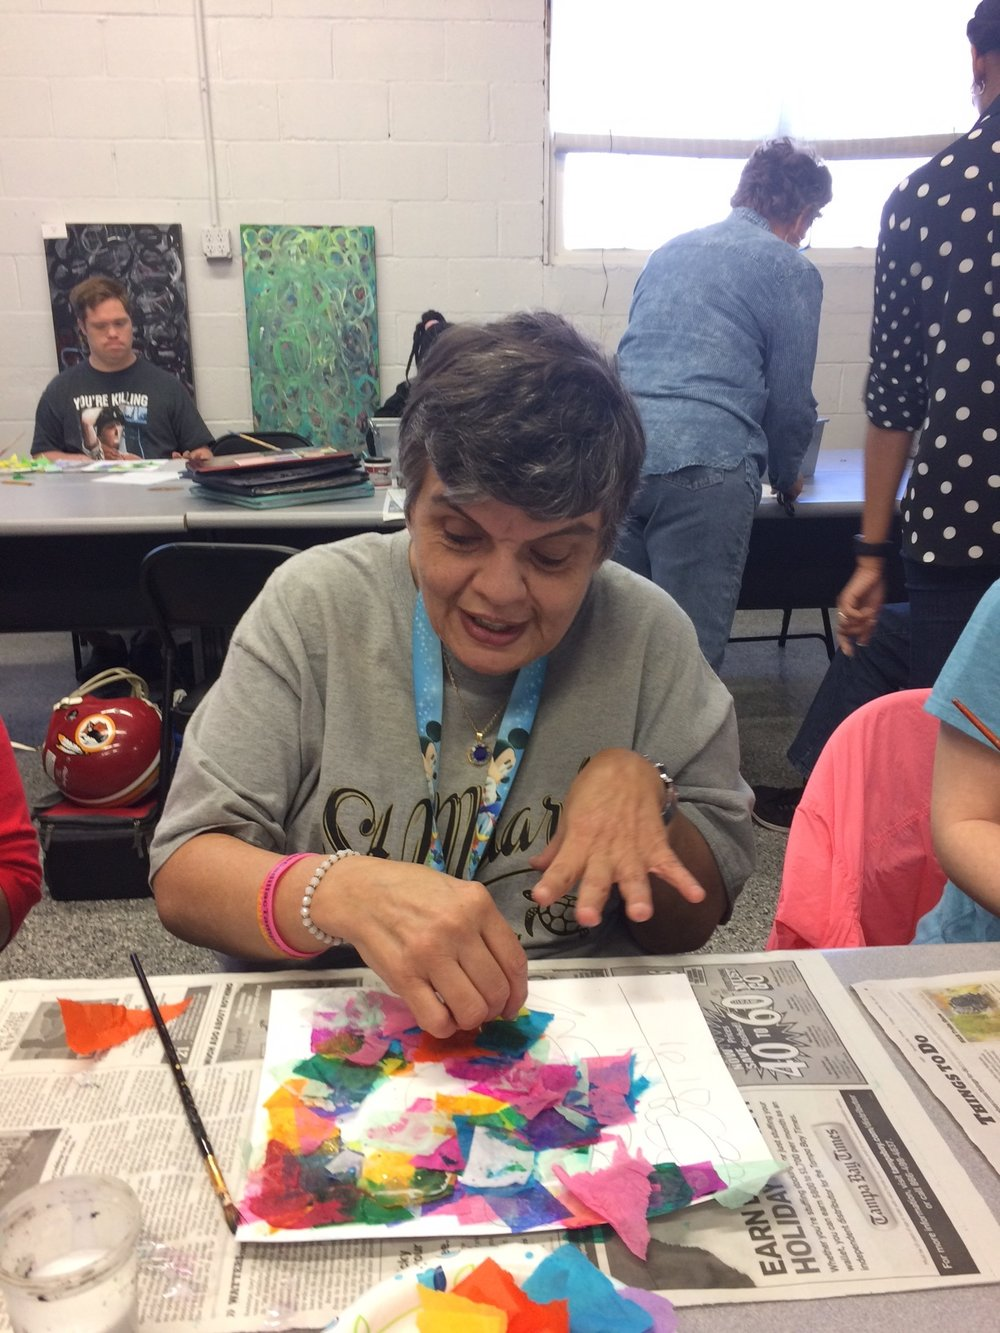 Featured artist Linda M. working on one of her mixed media pieces.